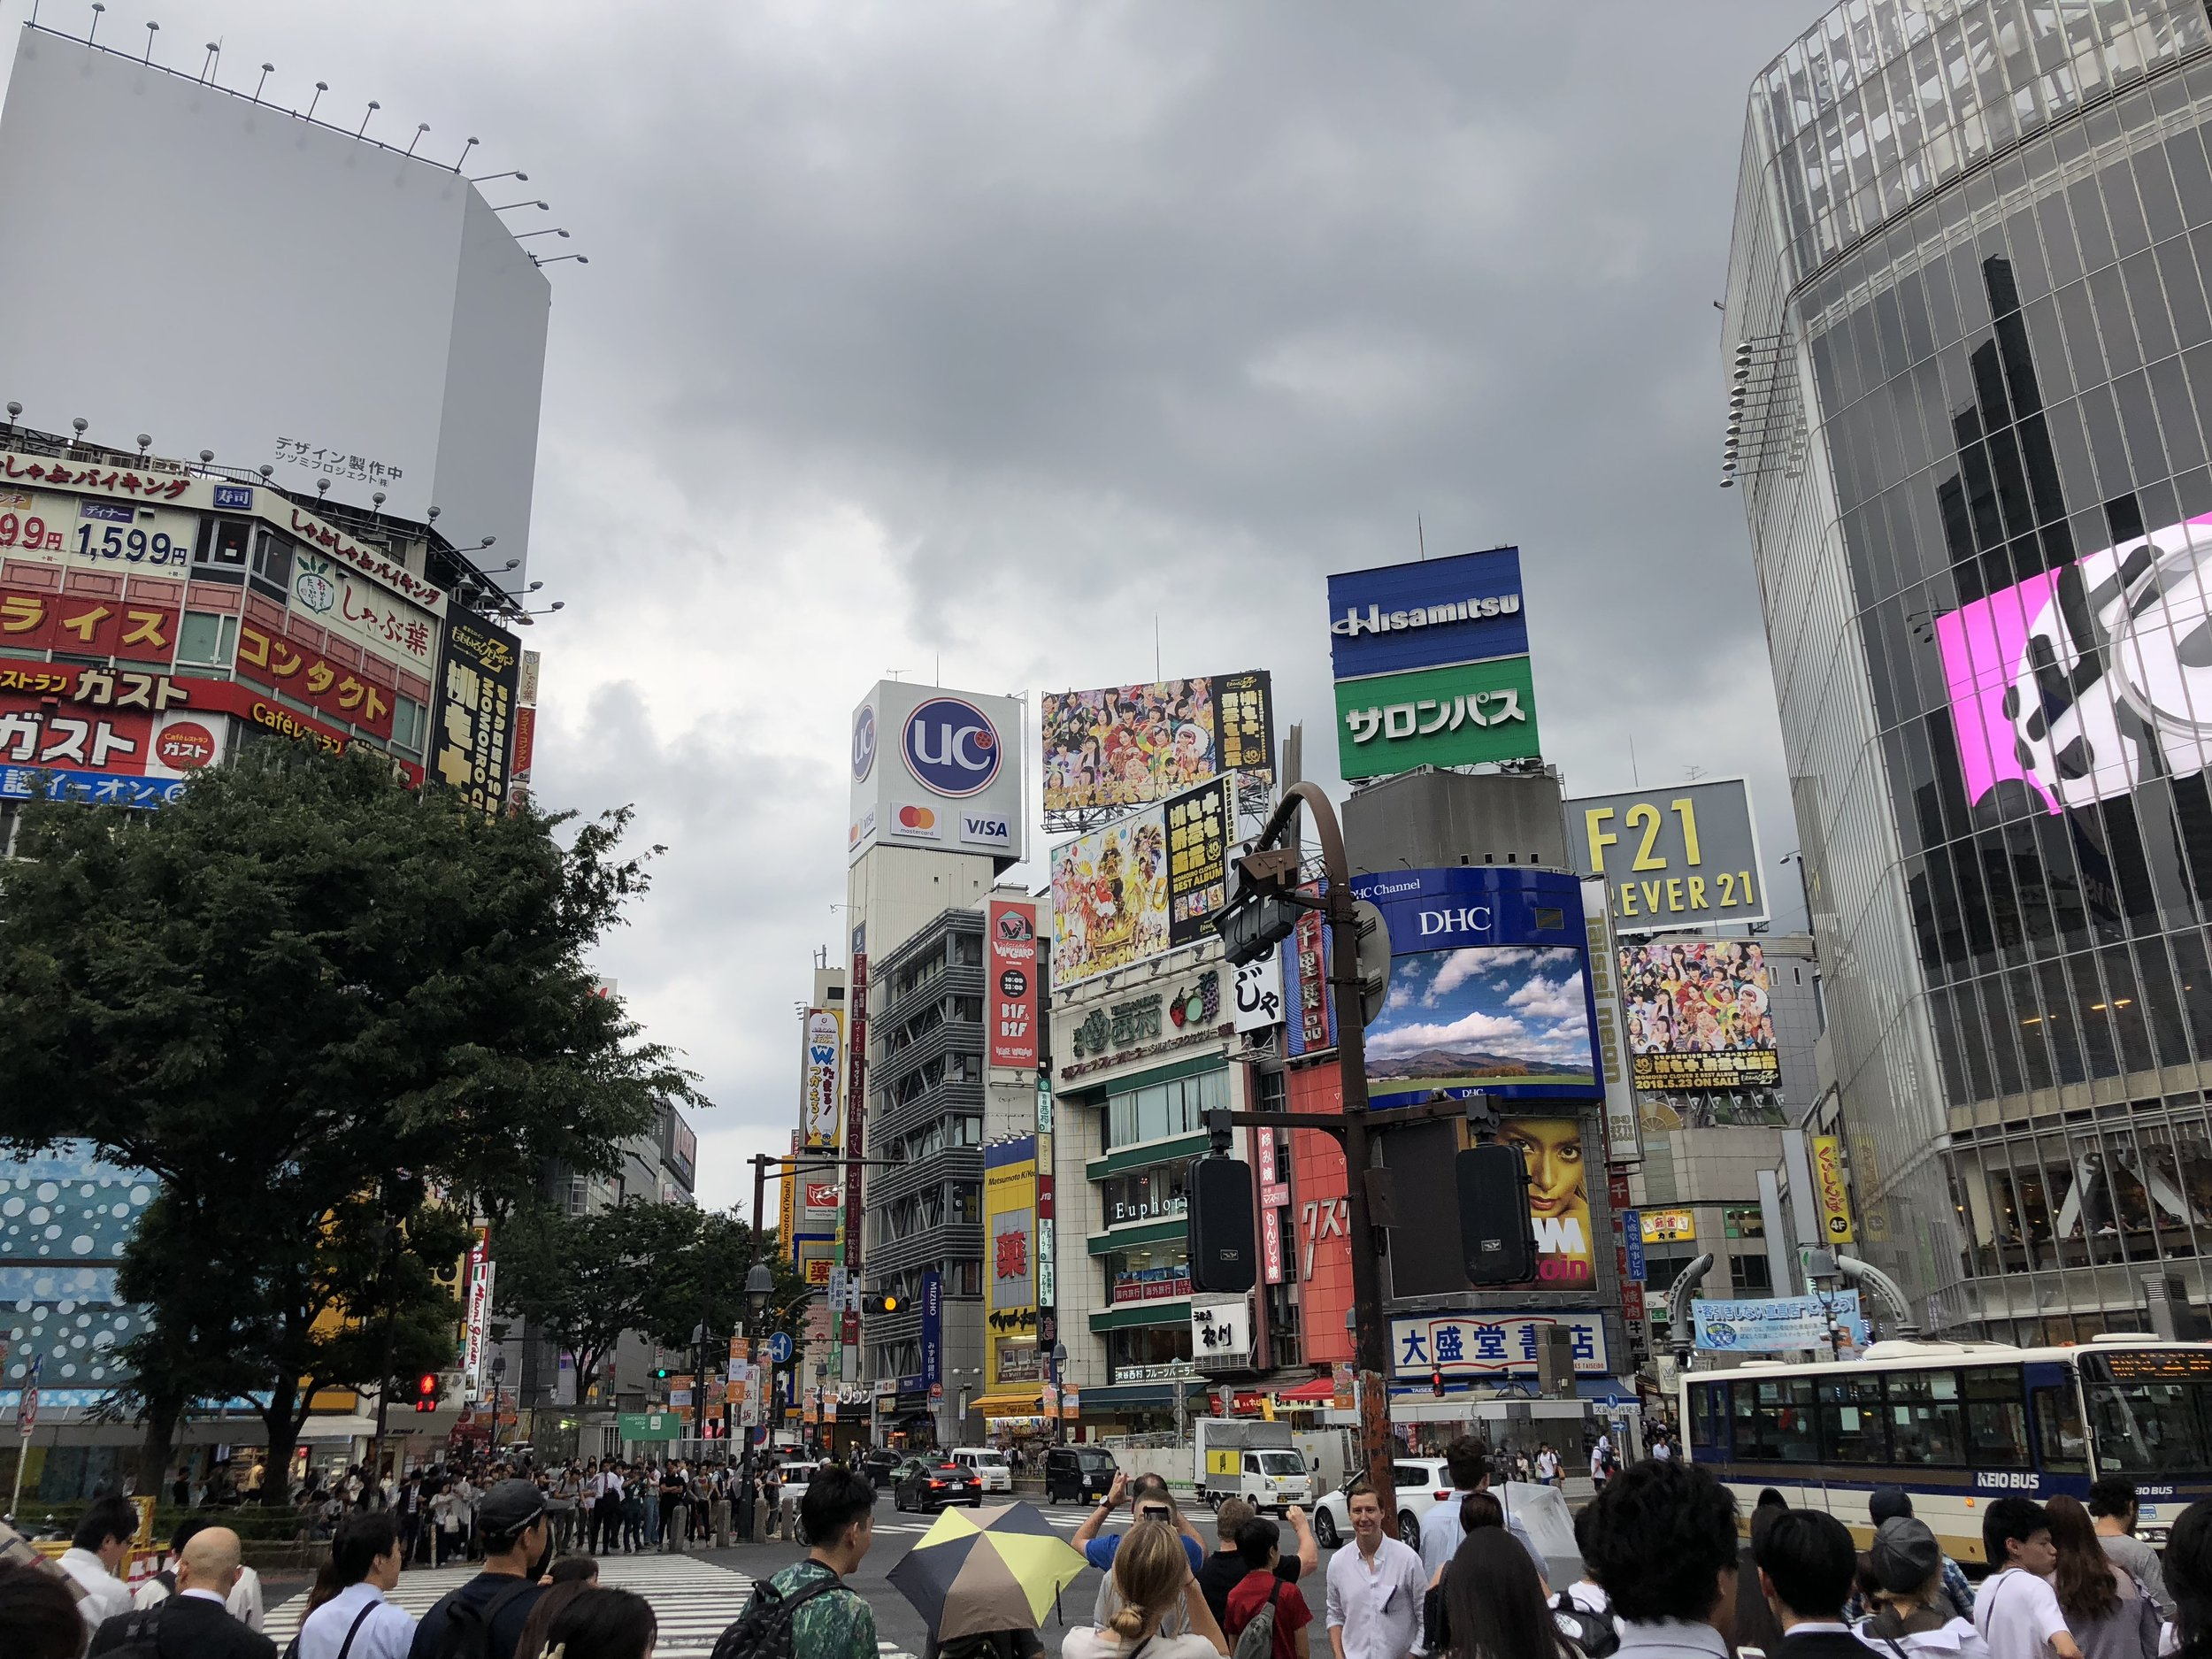 Like I said...gloating. This was on my first day in Tokyo at Shibuya crossing, the busiest intersection in the world.